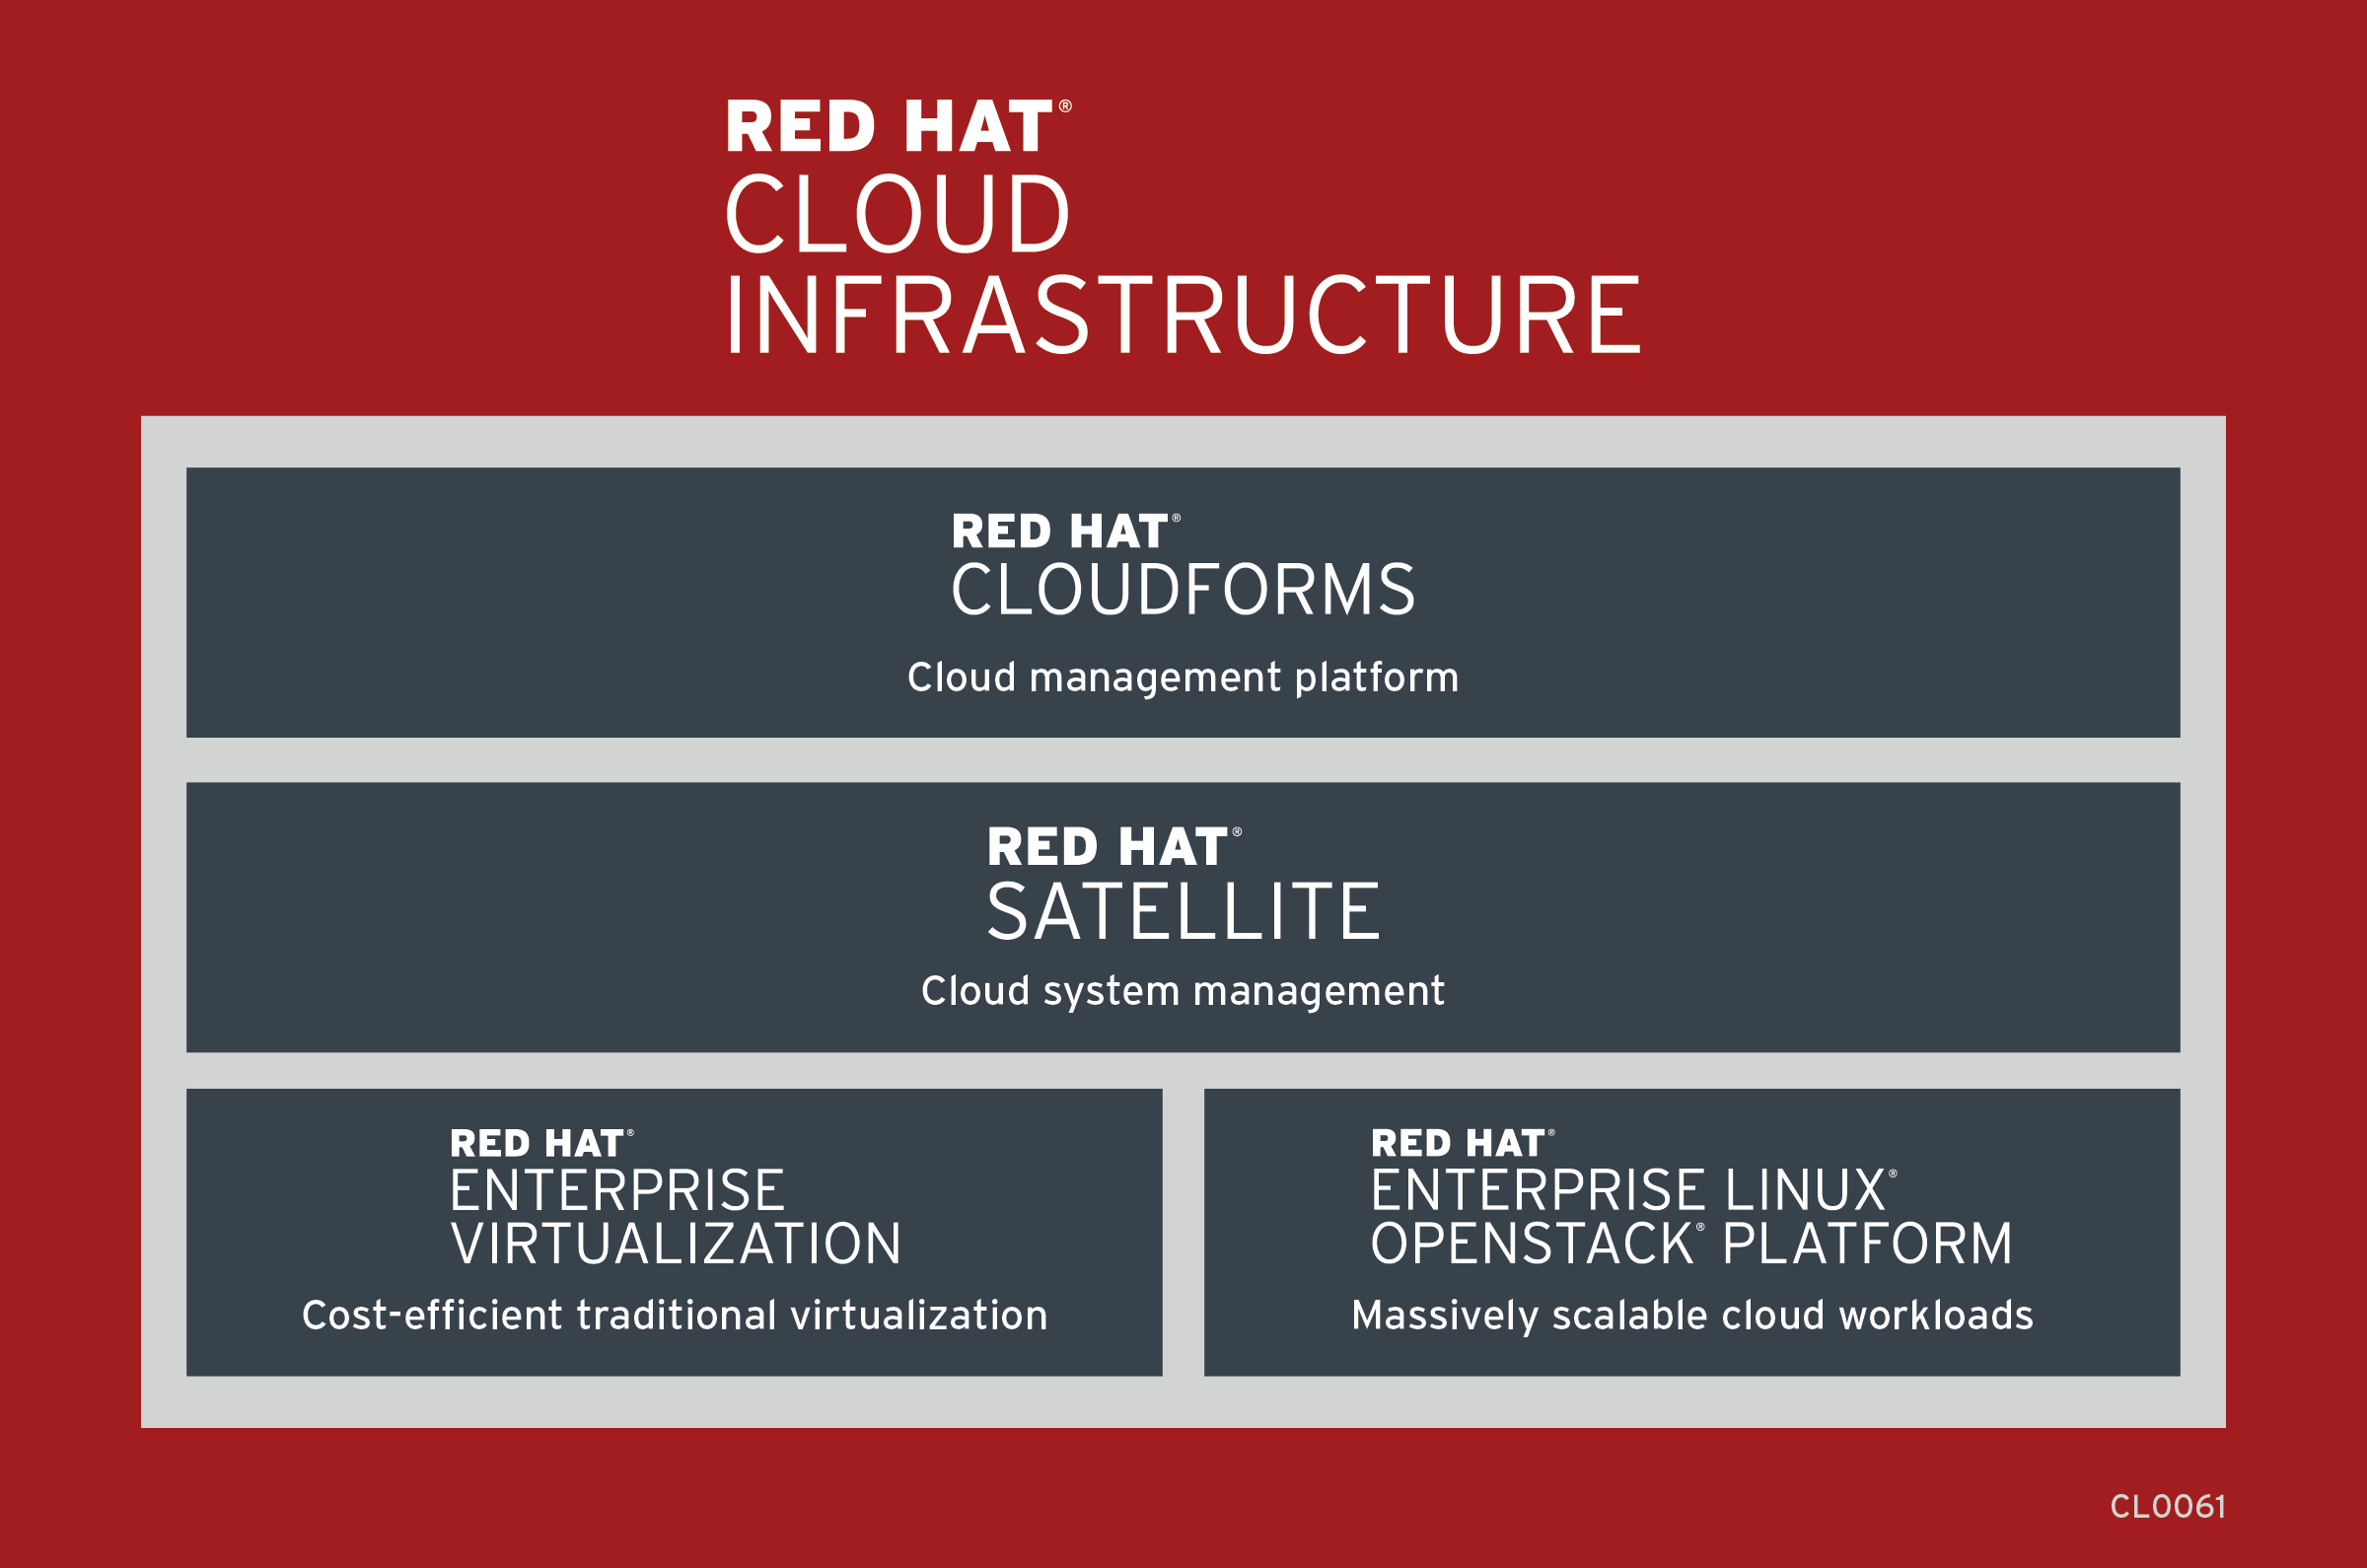 Red Hat Cloud Infrastructure Support Information - Red Hat ...